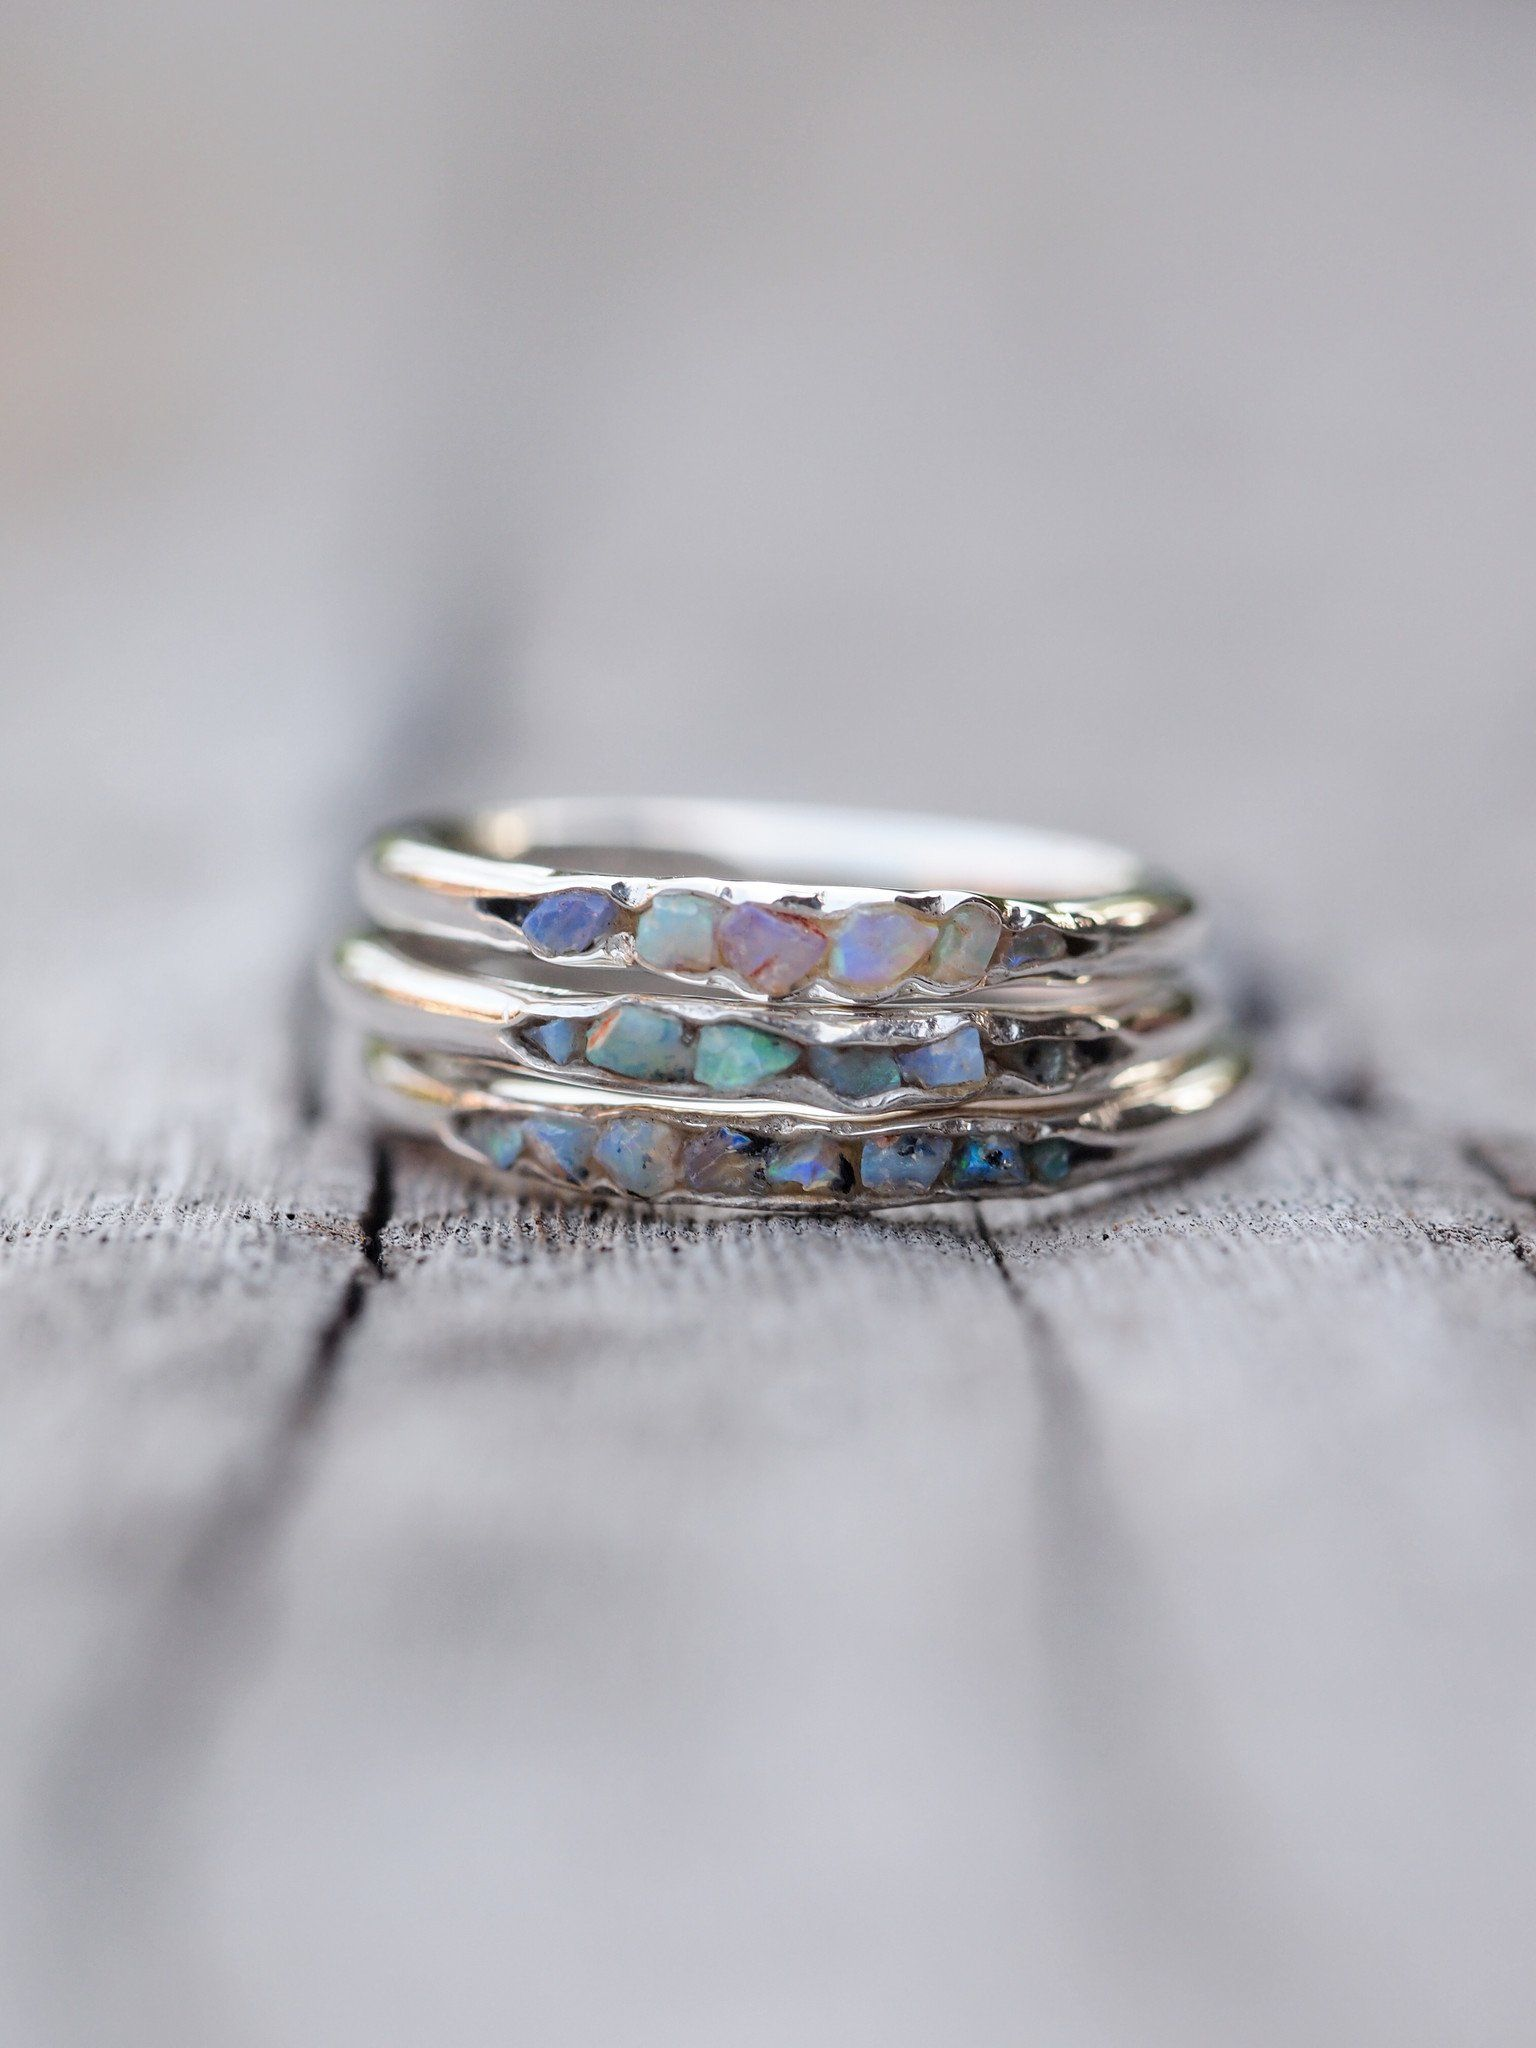 birthstone photograph new deco ring of wedding band trillion engagement opal promise split october rings